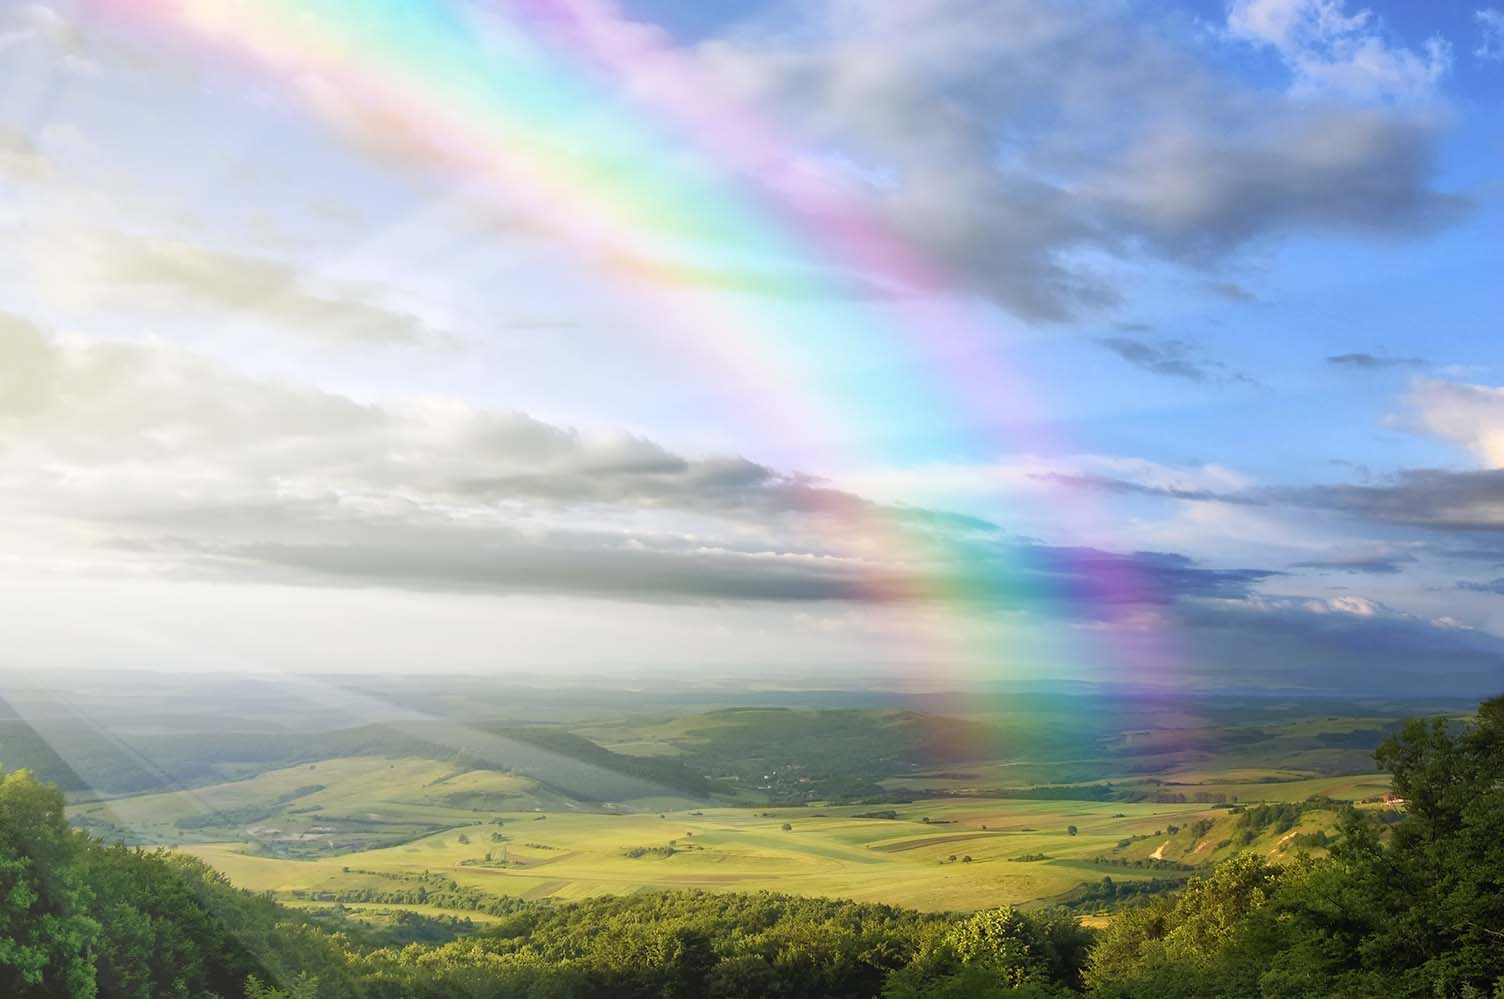 Positivity from seeing a rainbow